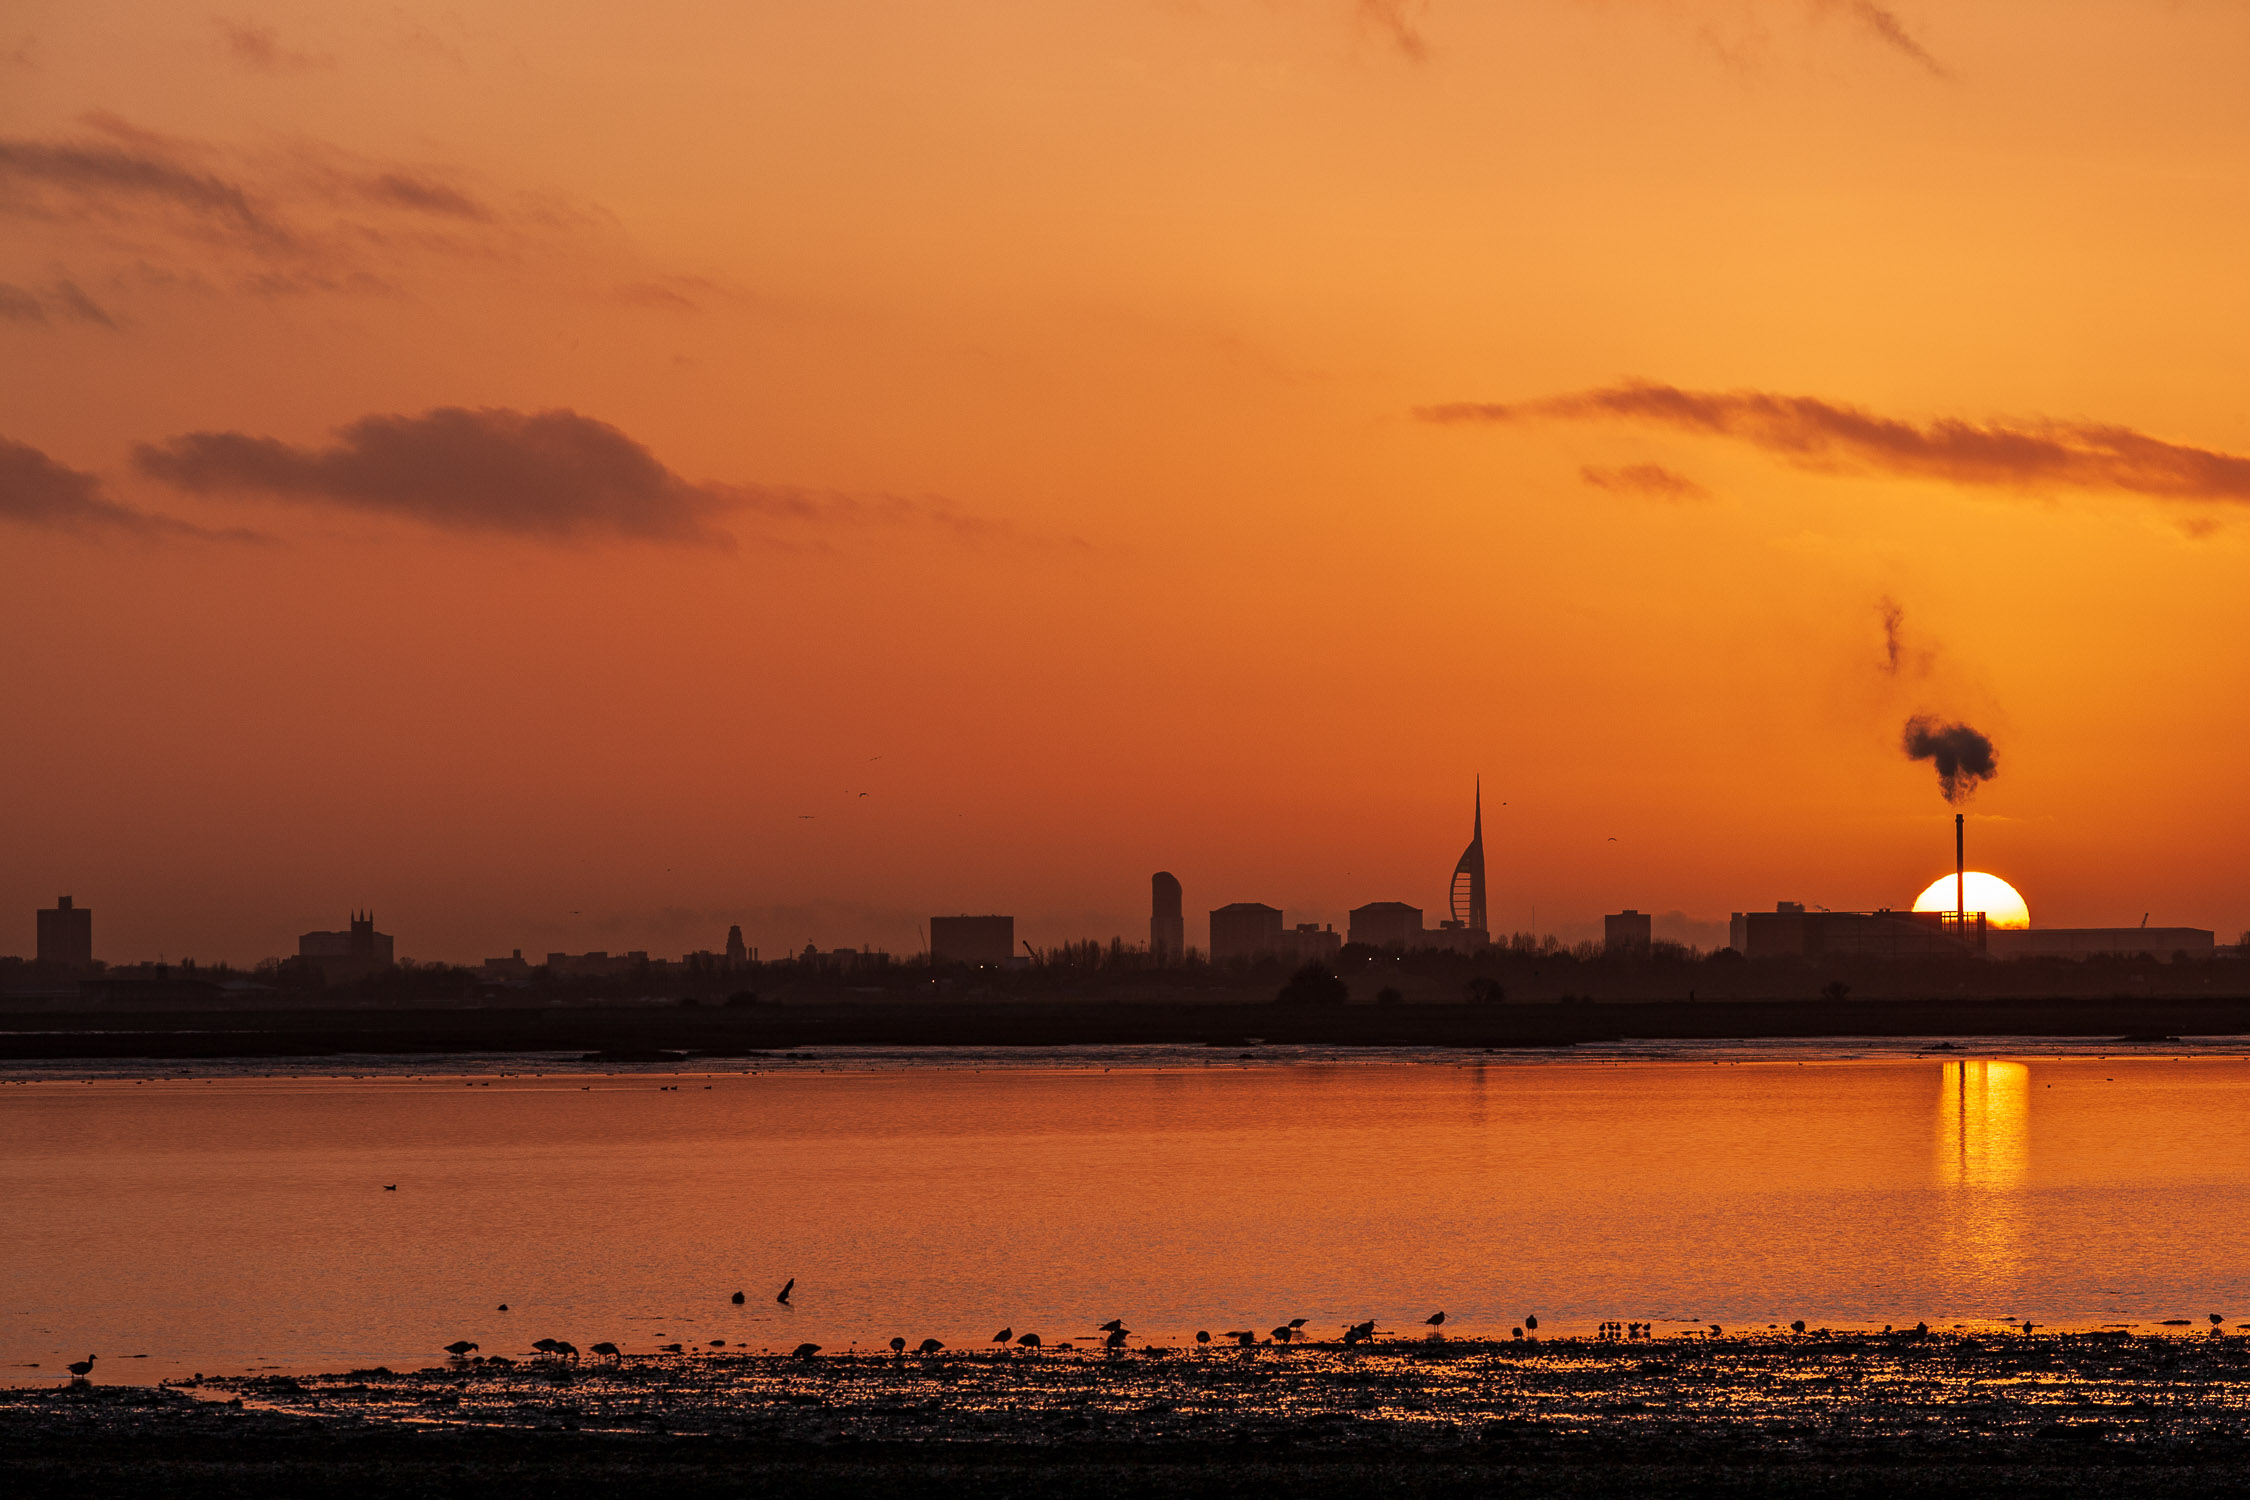 Sunset over Langstone Harbour, Hampshire